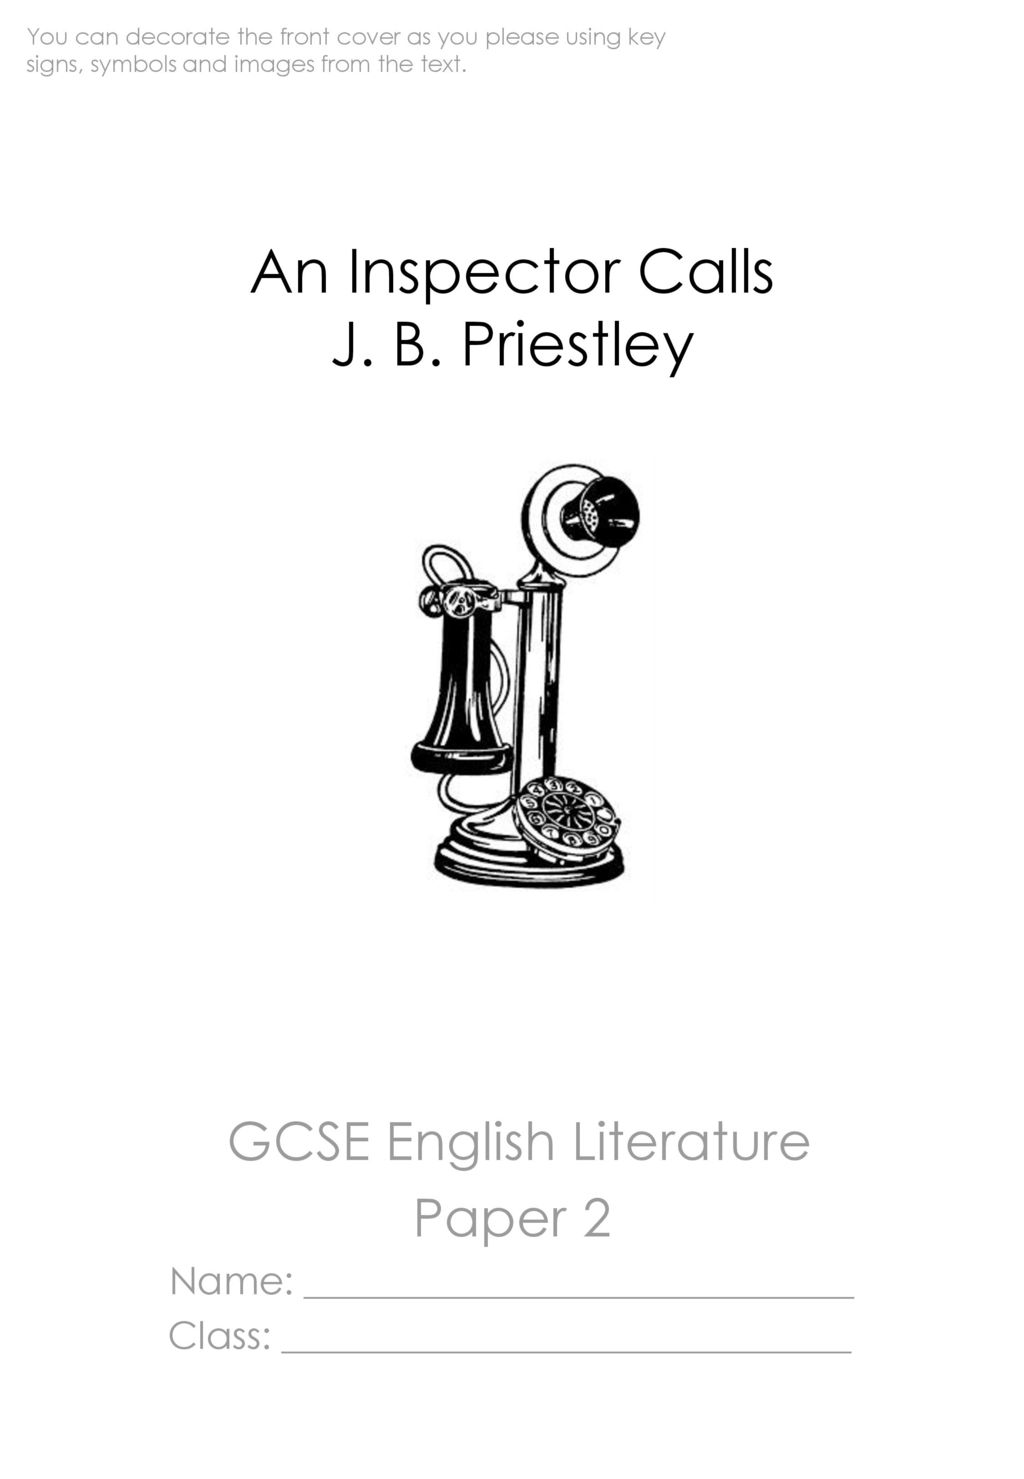 an inspector calls by j b priestly 2 essay And having already published one book and contributed critical articles and essays to plays, jb priestley s an inspector calls and other plays.